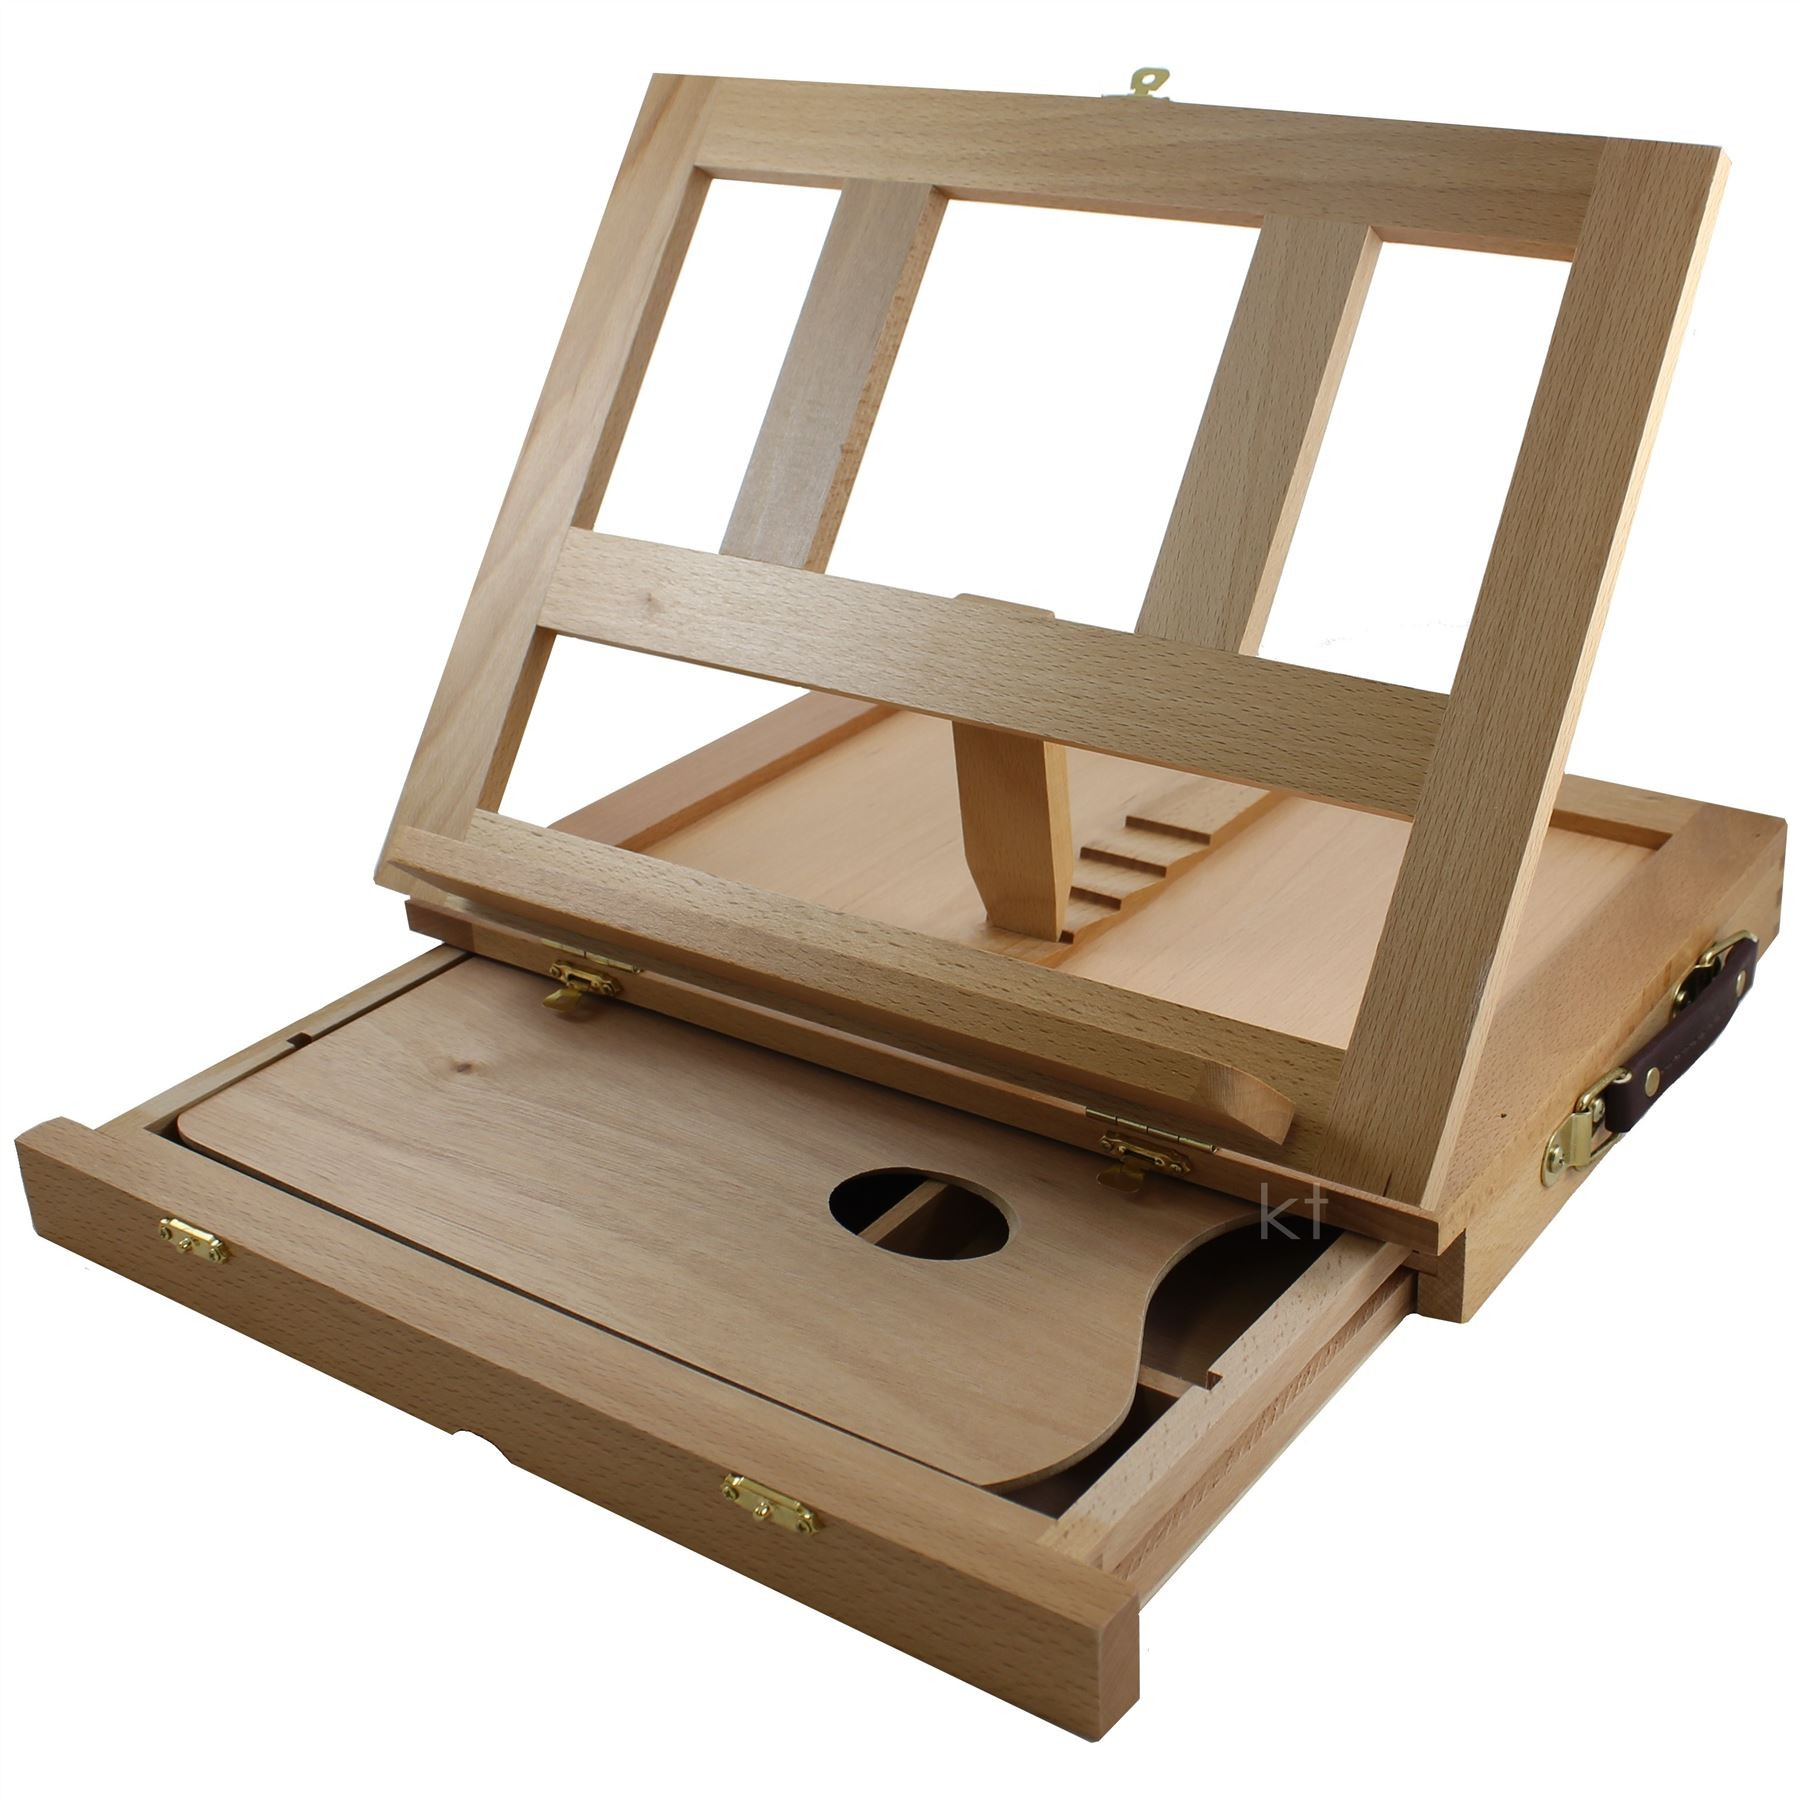 Loxley Avon artists easel with drawer